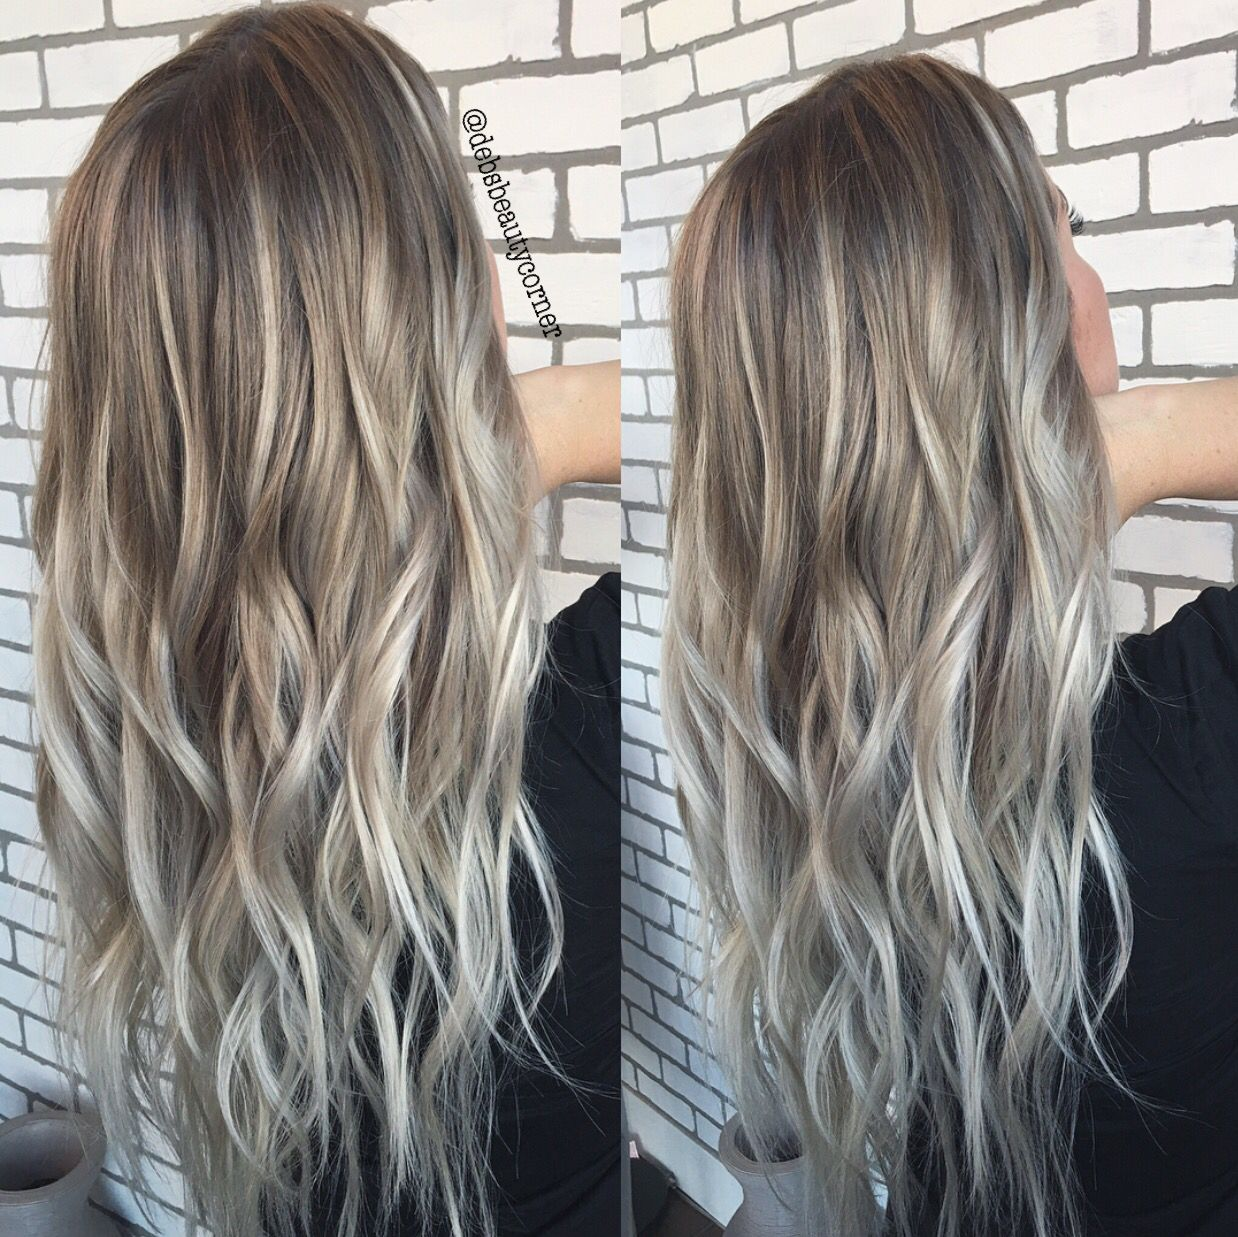 Best Tools For Hair Hair Hair Ashy Blonde Balayage Hair Styles